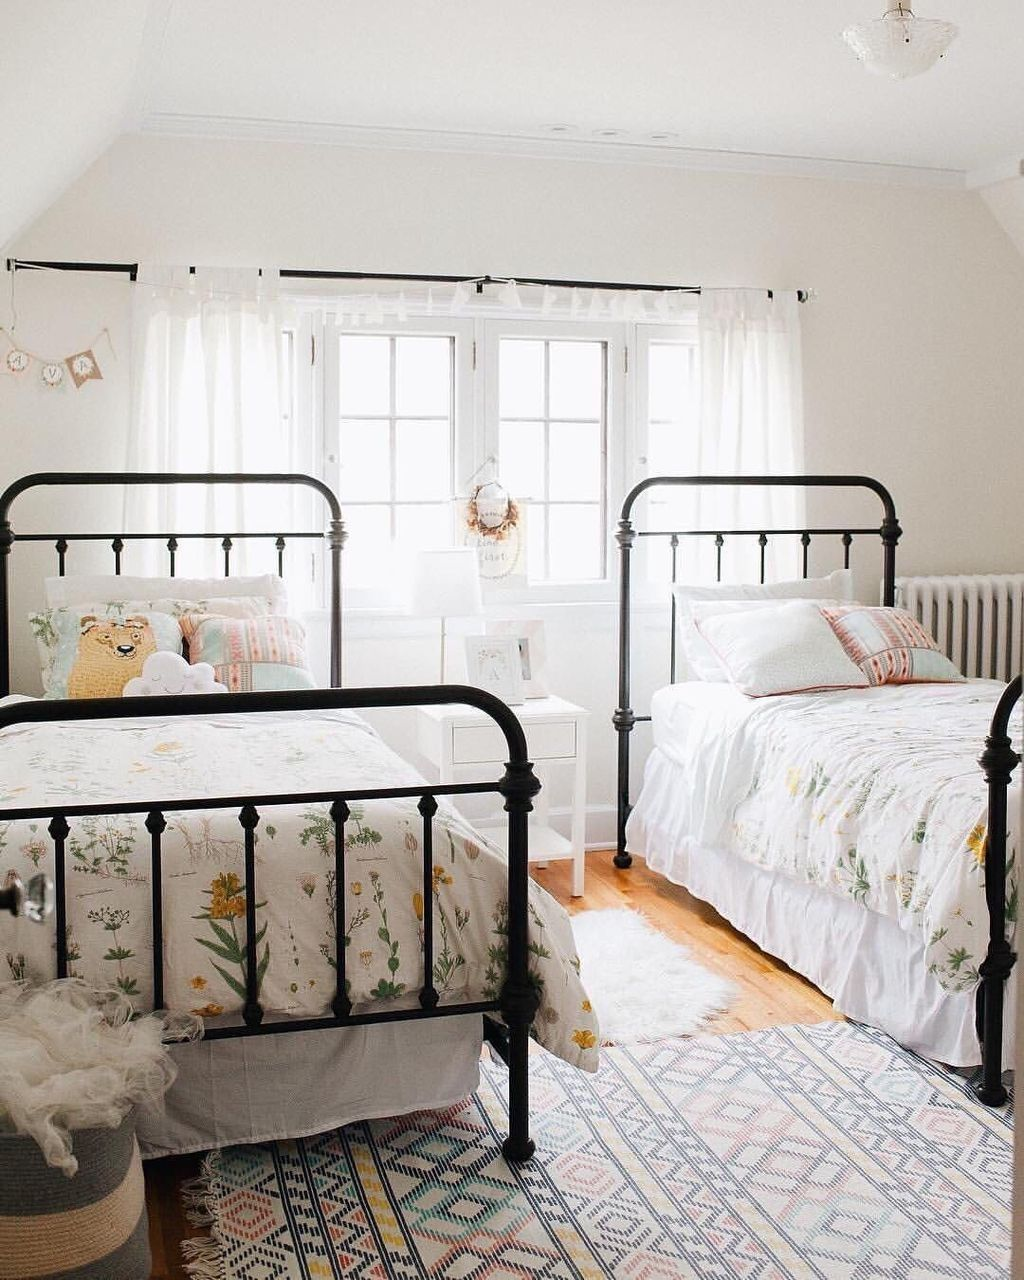 Bunk Beds And Roll Out Beds Are Excellent For Kids Who Share A Room Especially If Each Child Can Shared Girls Bedroom Farm House Living Room Iron Bed Frame